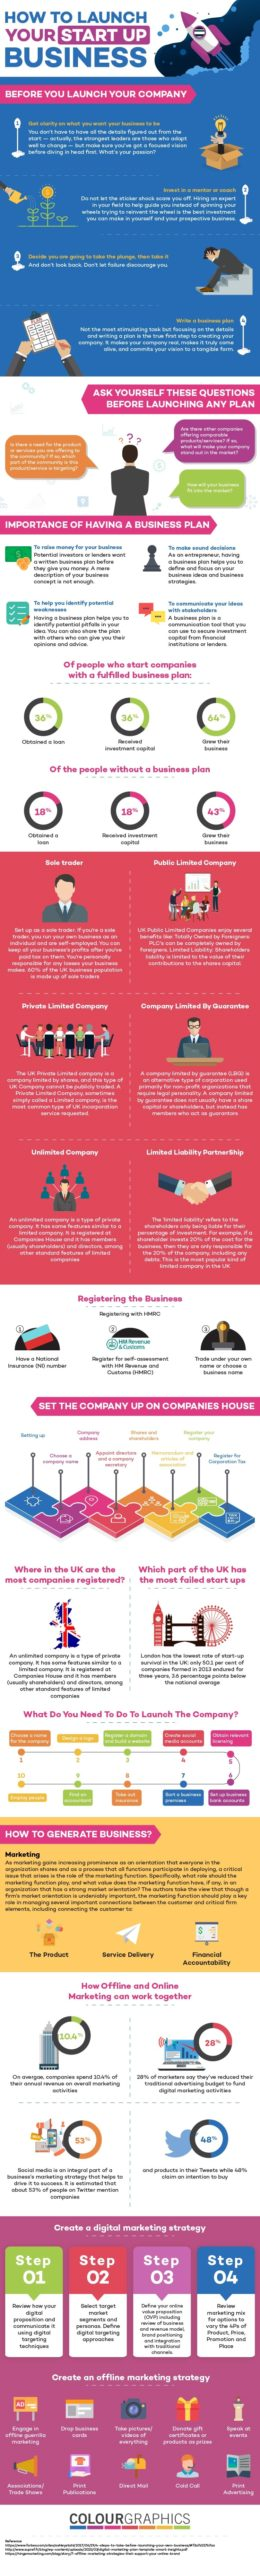 Launch start up business infographic